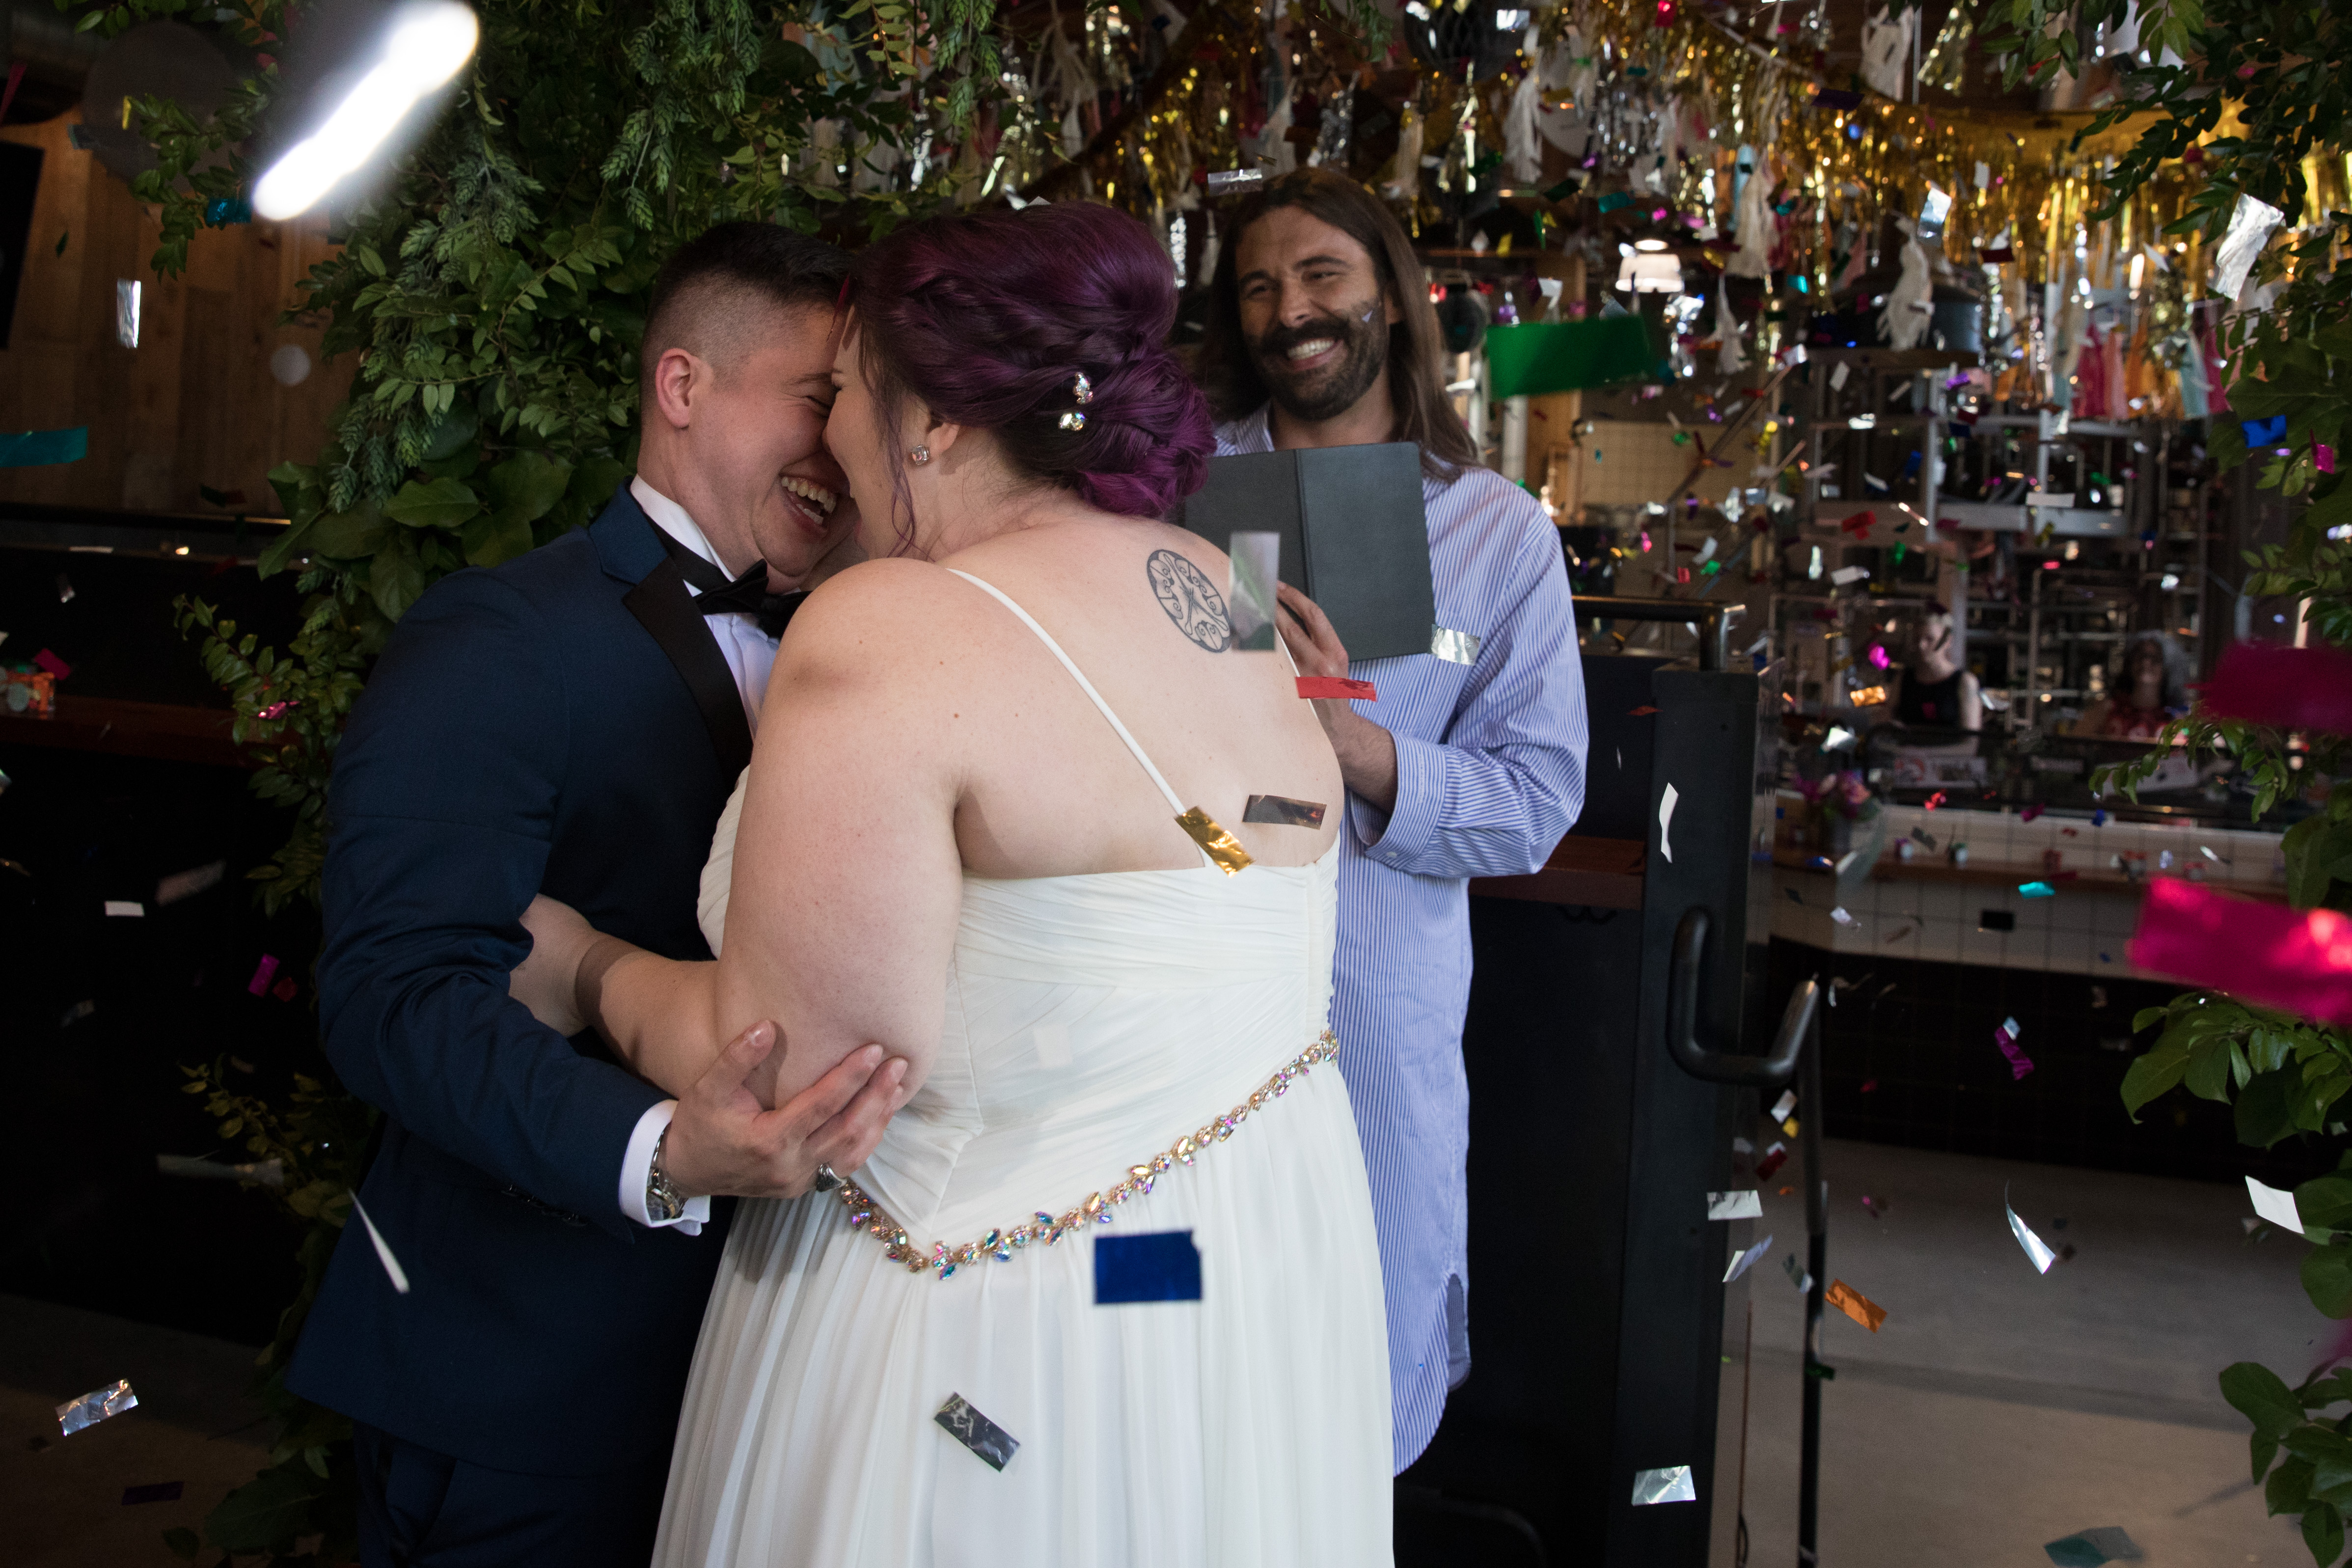 CAN YOU EVEN BELIEVE?!{ } #MarryUsJVN contest winners, Megan (right) and Haden (left) share a first kiss at the altar after being wed by LGBTQ+ advocate, Jonathan Van Ness, at Elysian Brewing's Capitol Hill brewpub in Seattle on June 4, 2019.(Photo by Matt Mills McKnight/Invision for Elysian Brewing/AP Images)